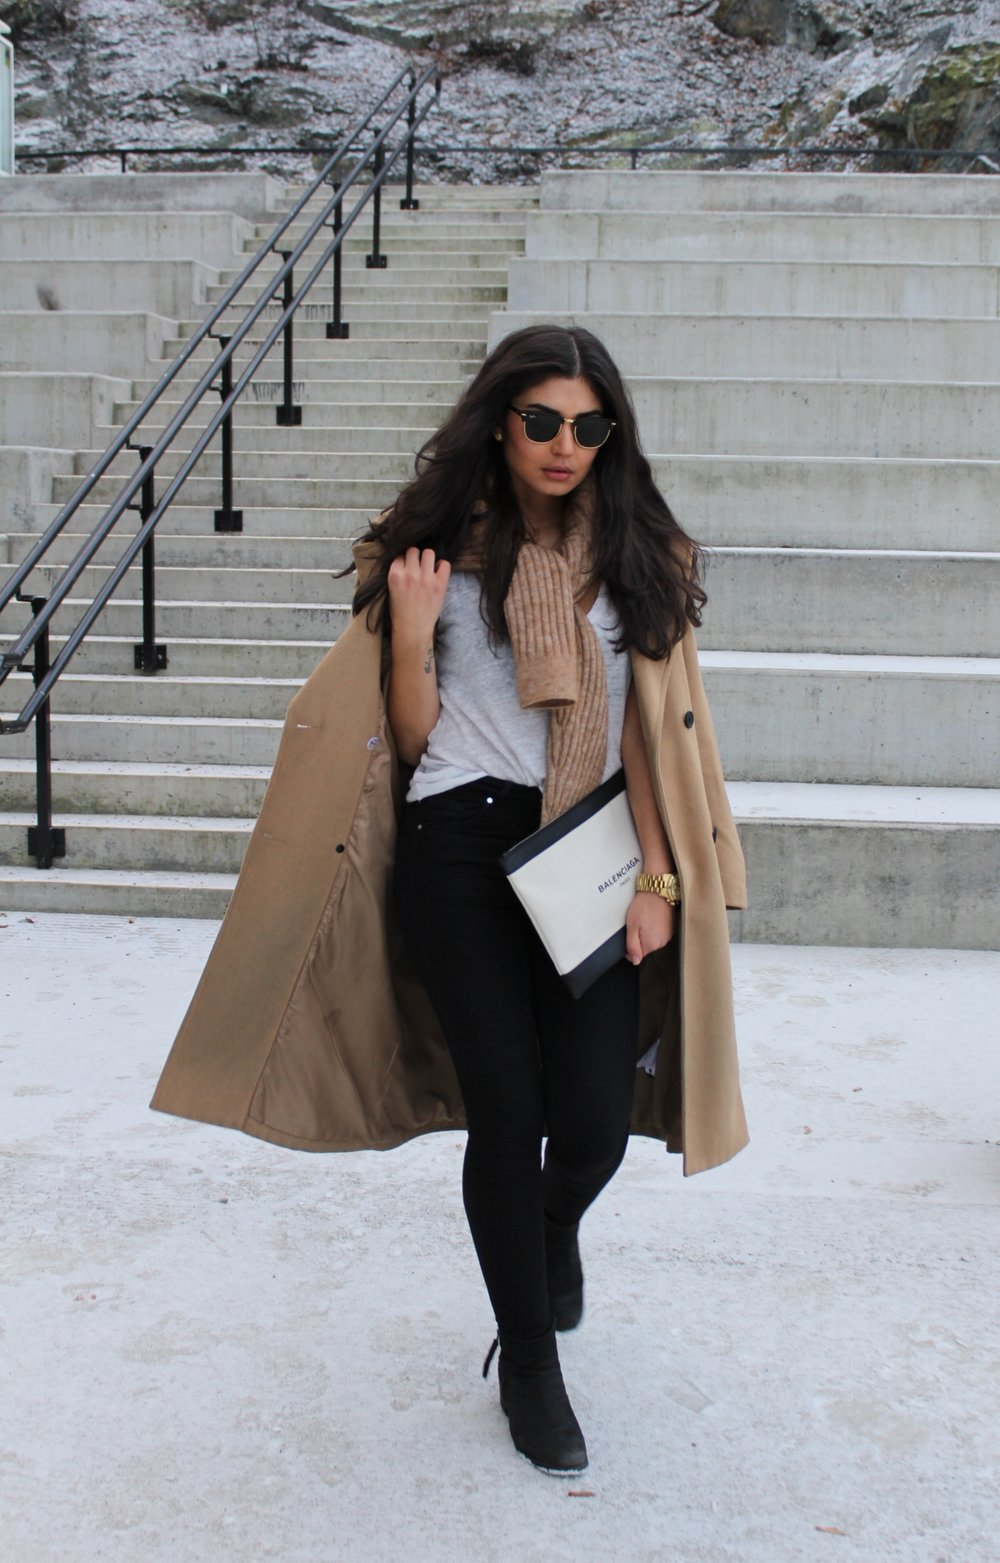 Coat/   Vila       Sweater/ Hm      Jeans/   Dr.Denim       Top/ GinaTricot    Shoes/ SixtySeven    Sunglasses/   Rayban     Clutch/   Balenciaga       Watch/ MichaelKors